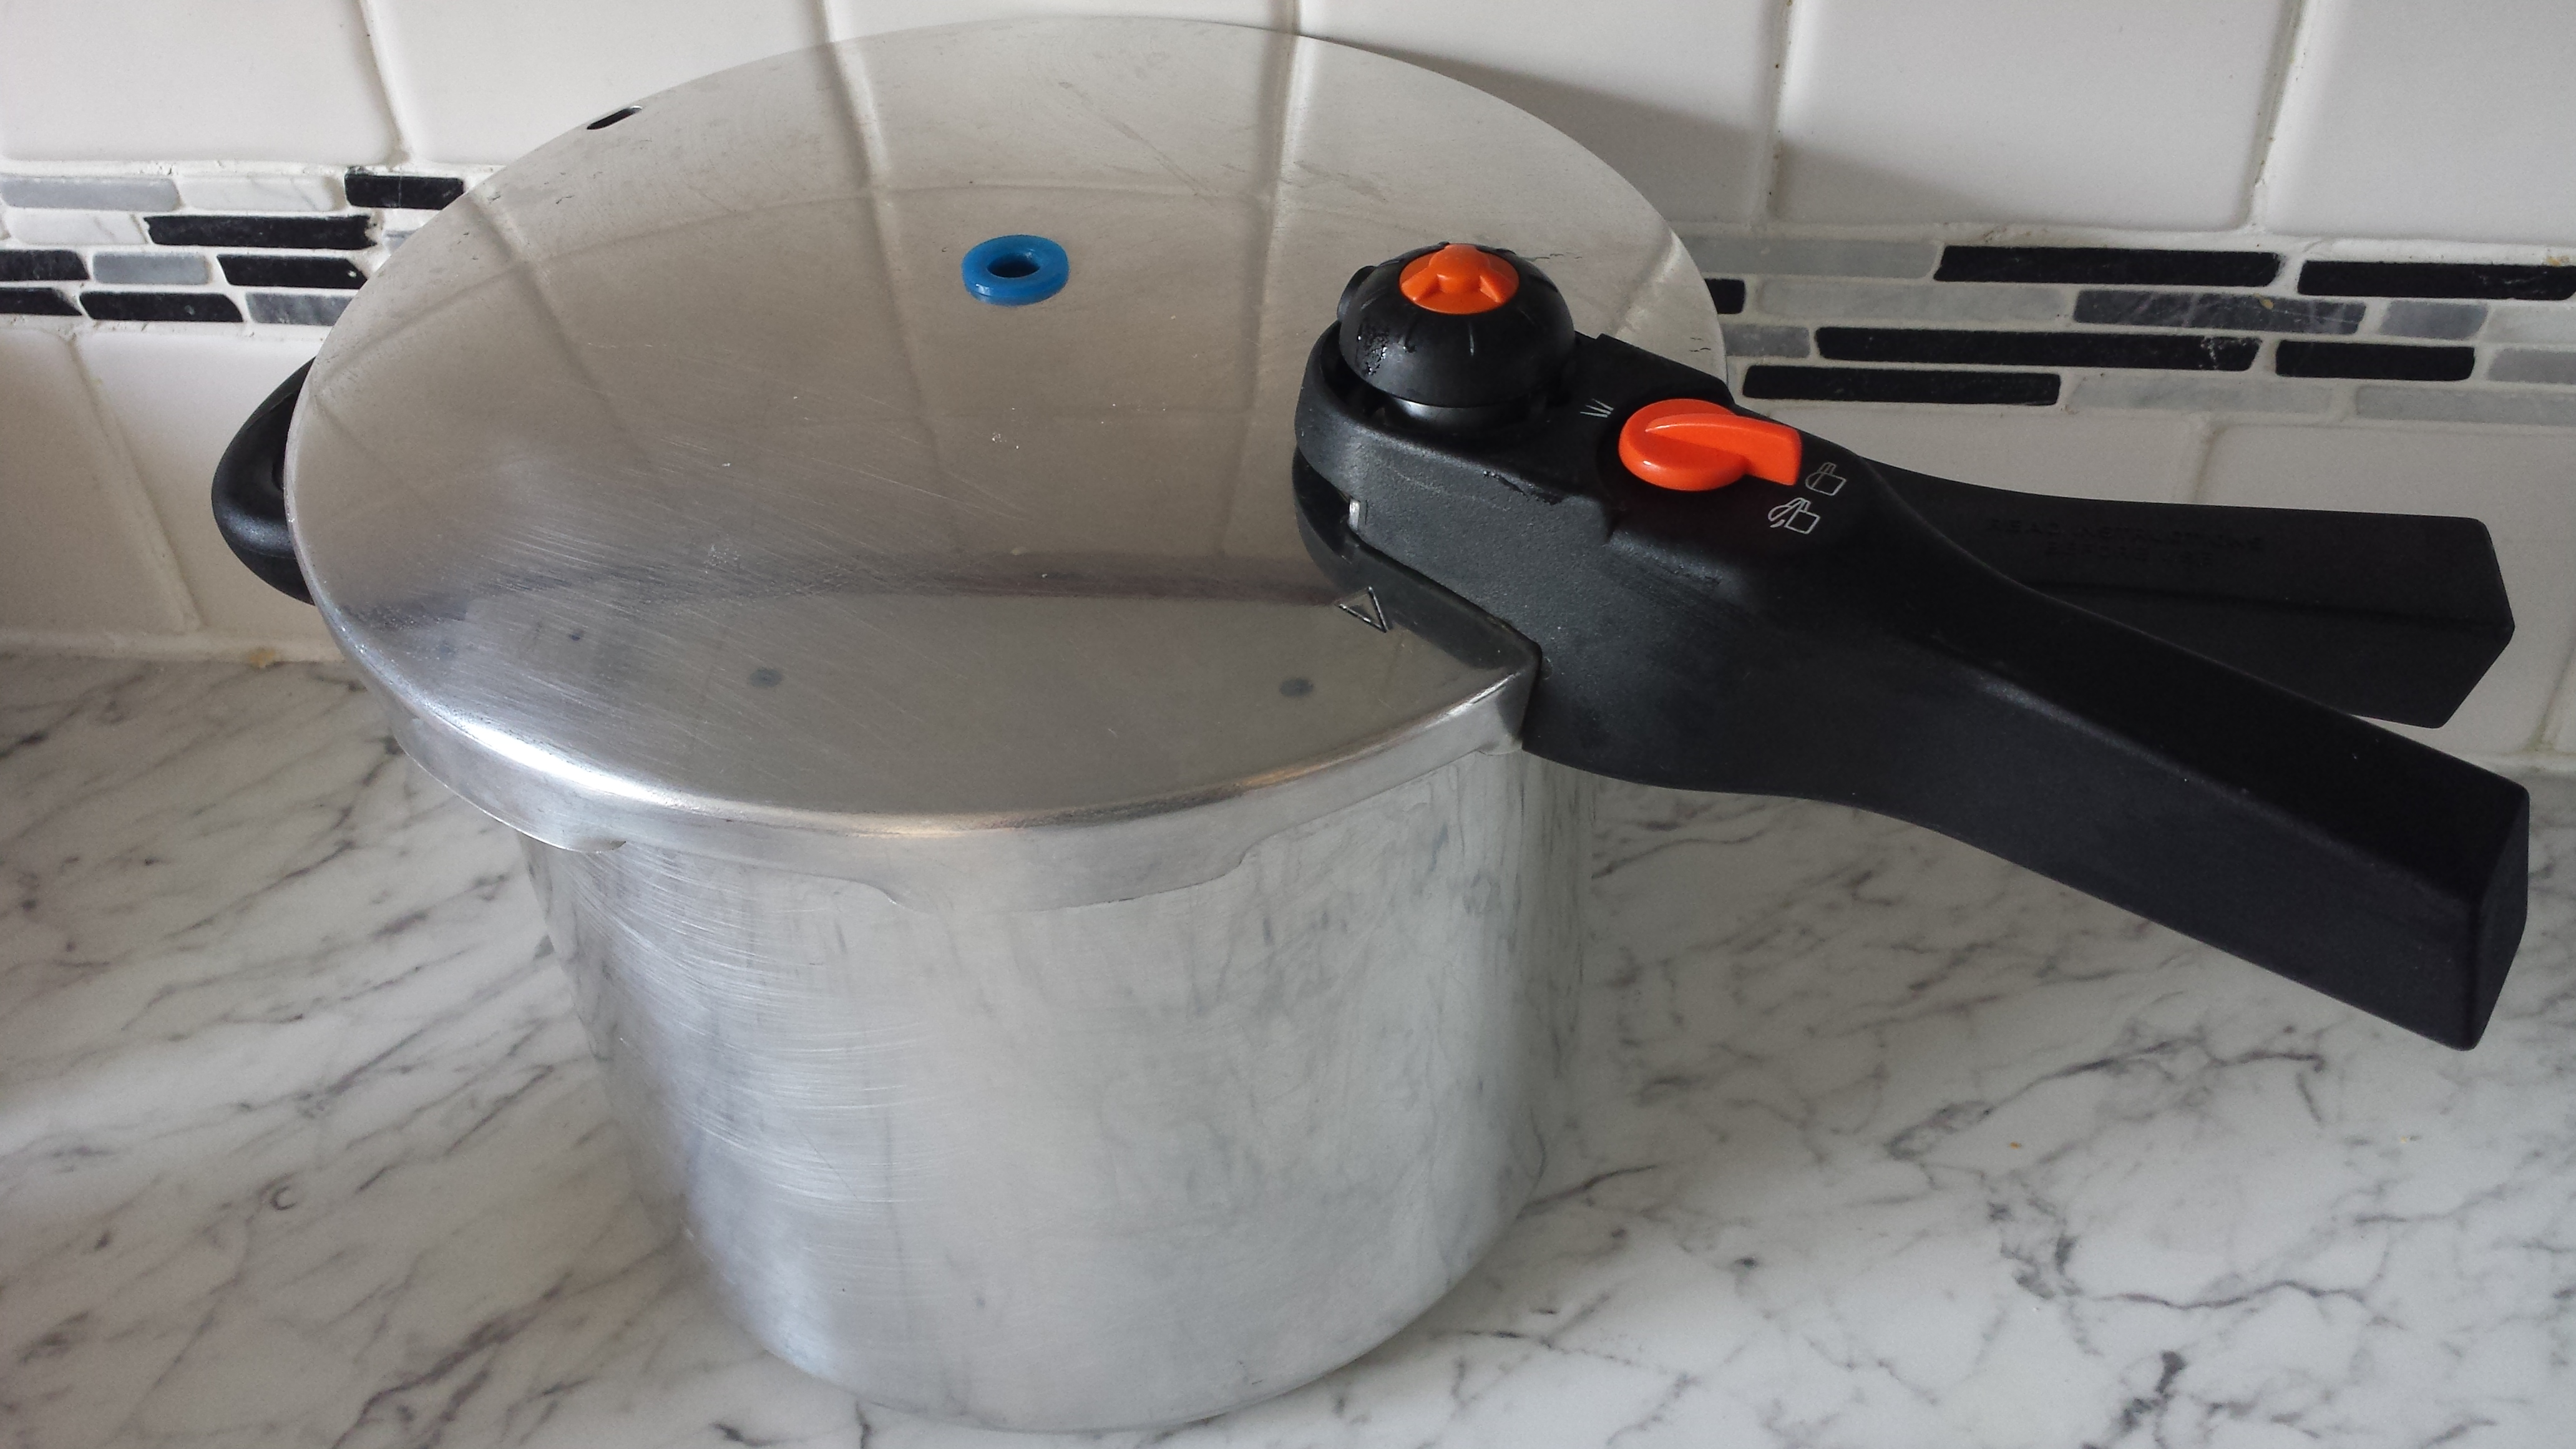 Stainless steel pressure cooker (Robert Dyas) review